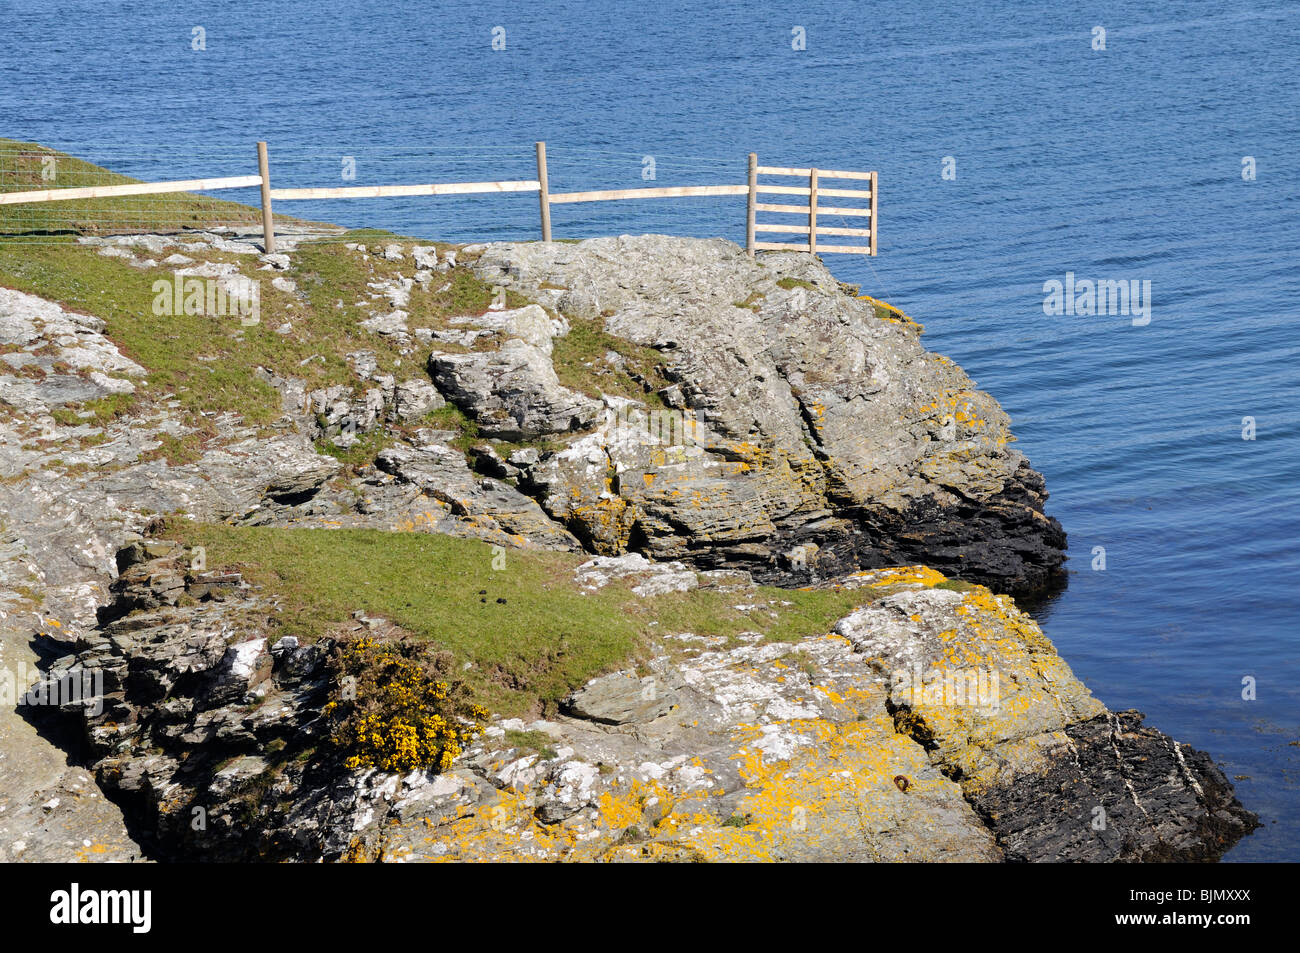 A fence goes right to the edge of a cliff above the sea. - Stock Image